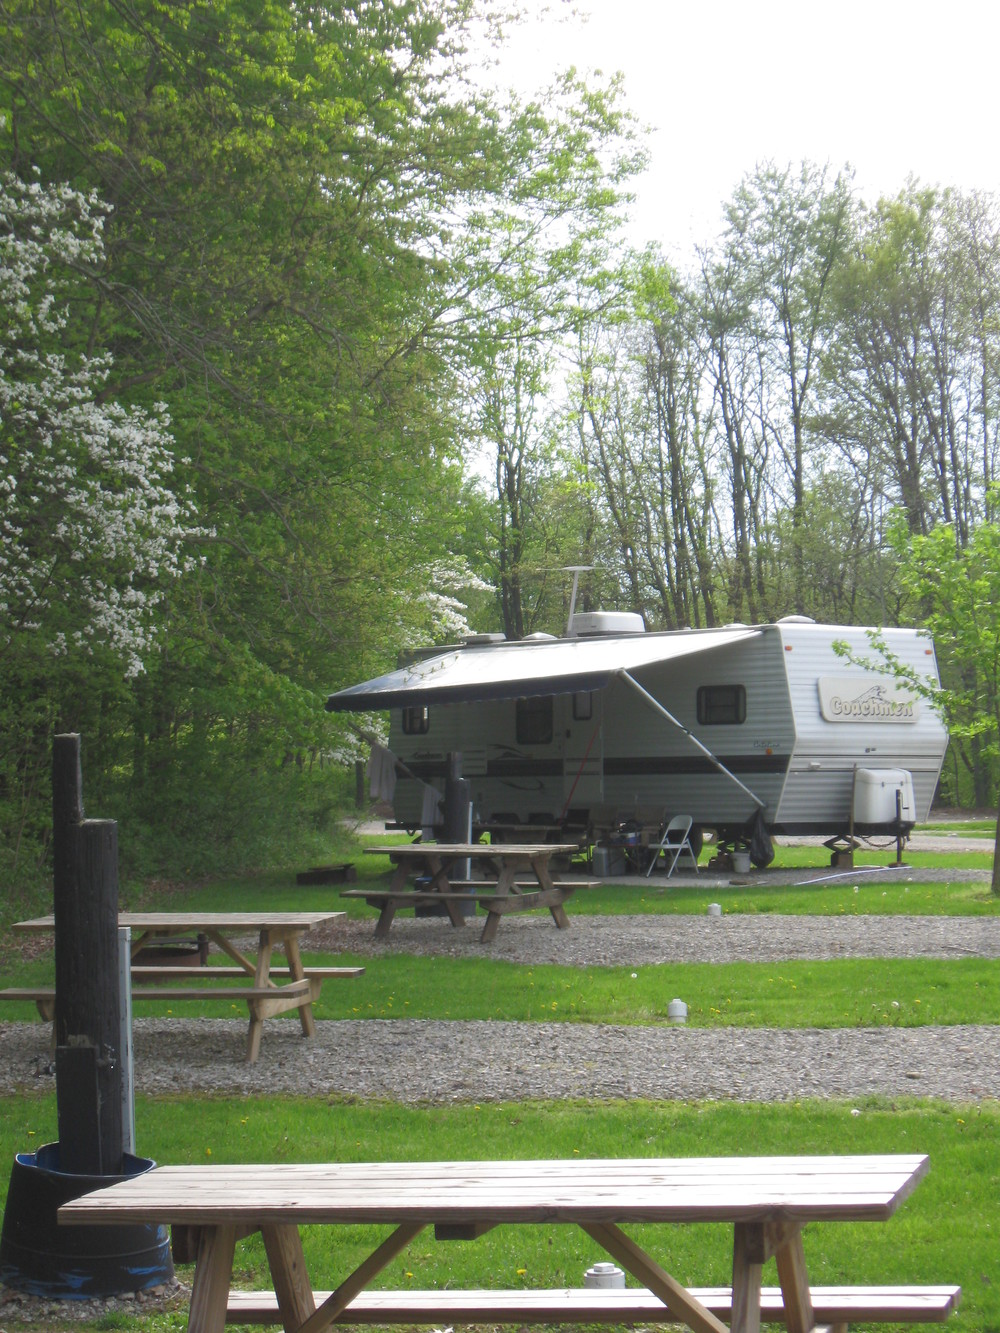 Our park hosts the conveniences of modern camping. 12 full hook-up sites two of which are pull through. 44 water/electric sites and 110 primitive sites.